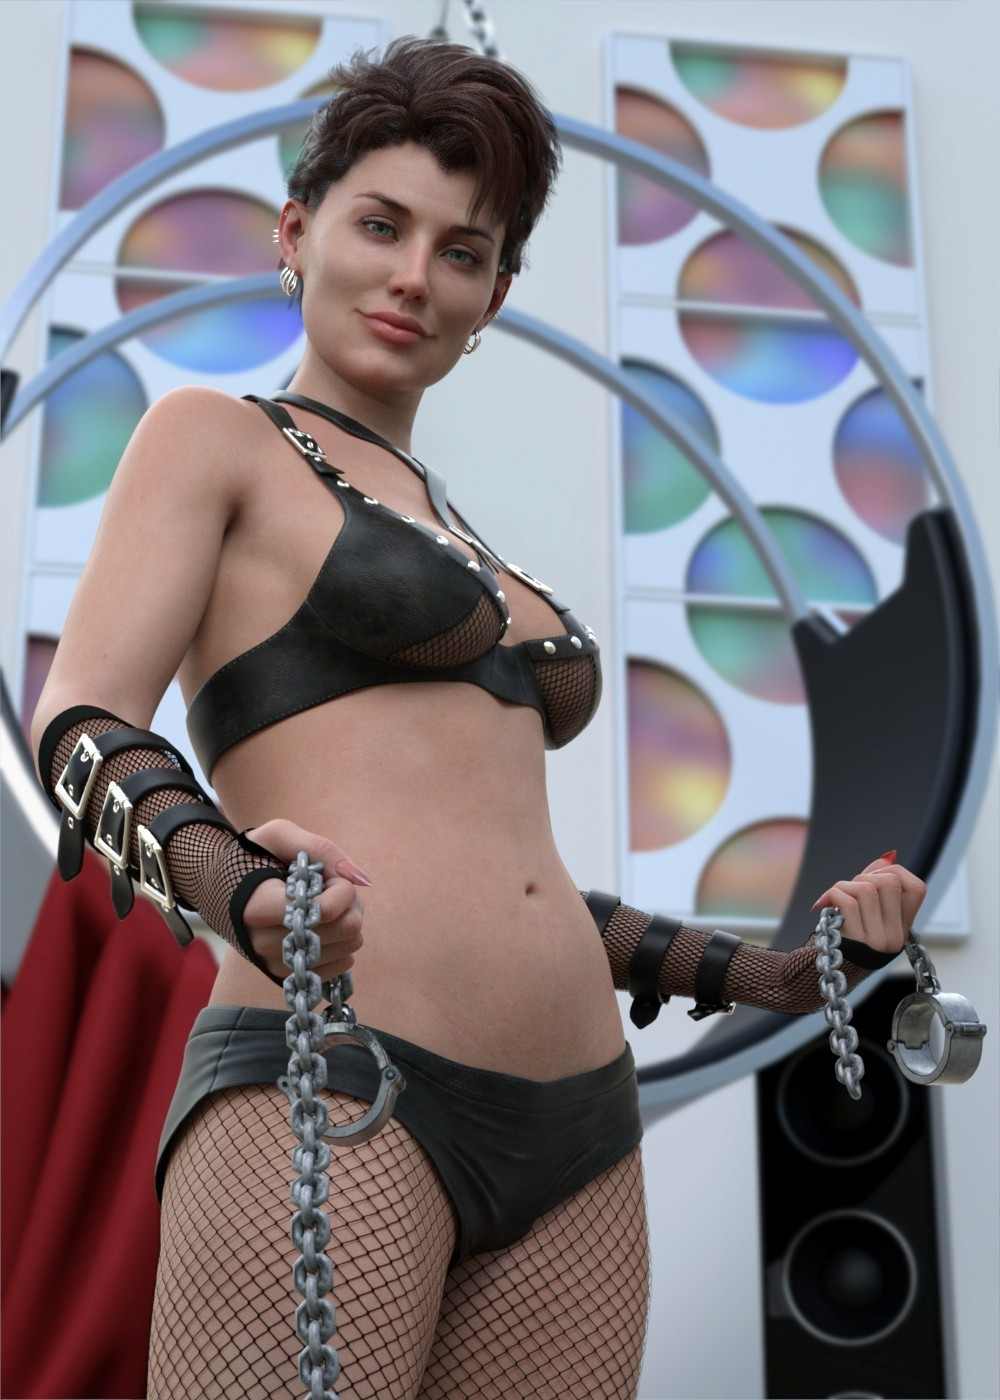 Dangerous Lady WARNING CONTAINS HANDCUFFS by Krid